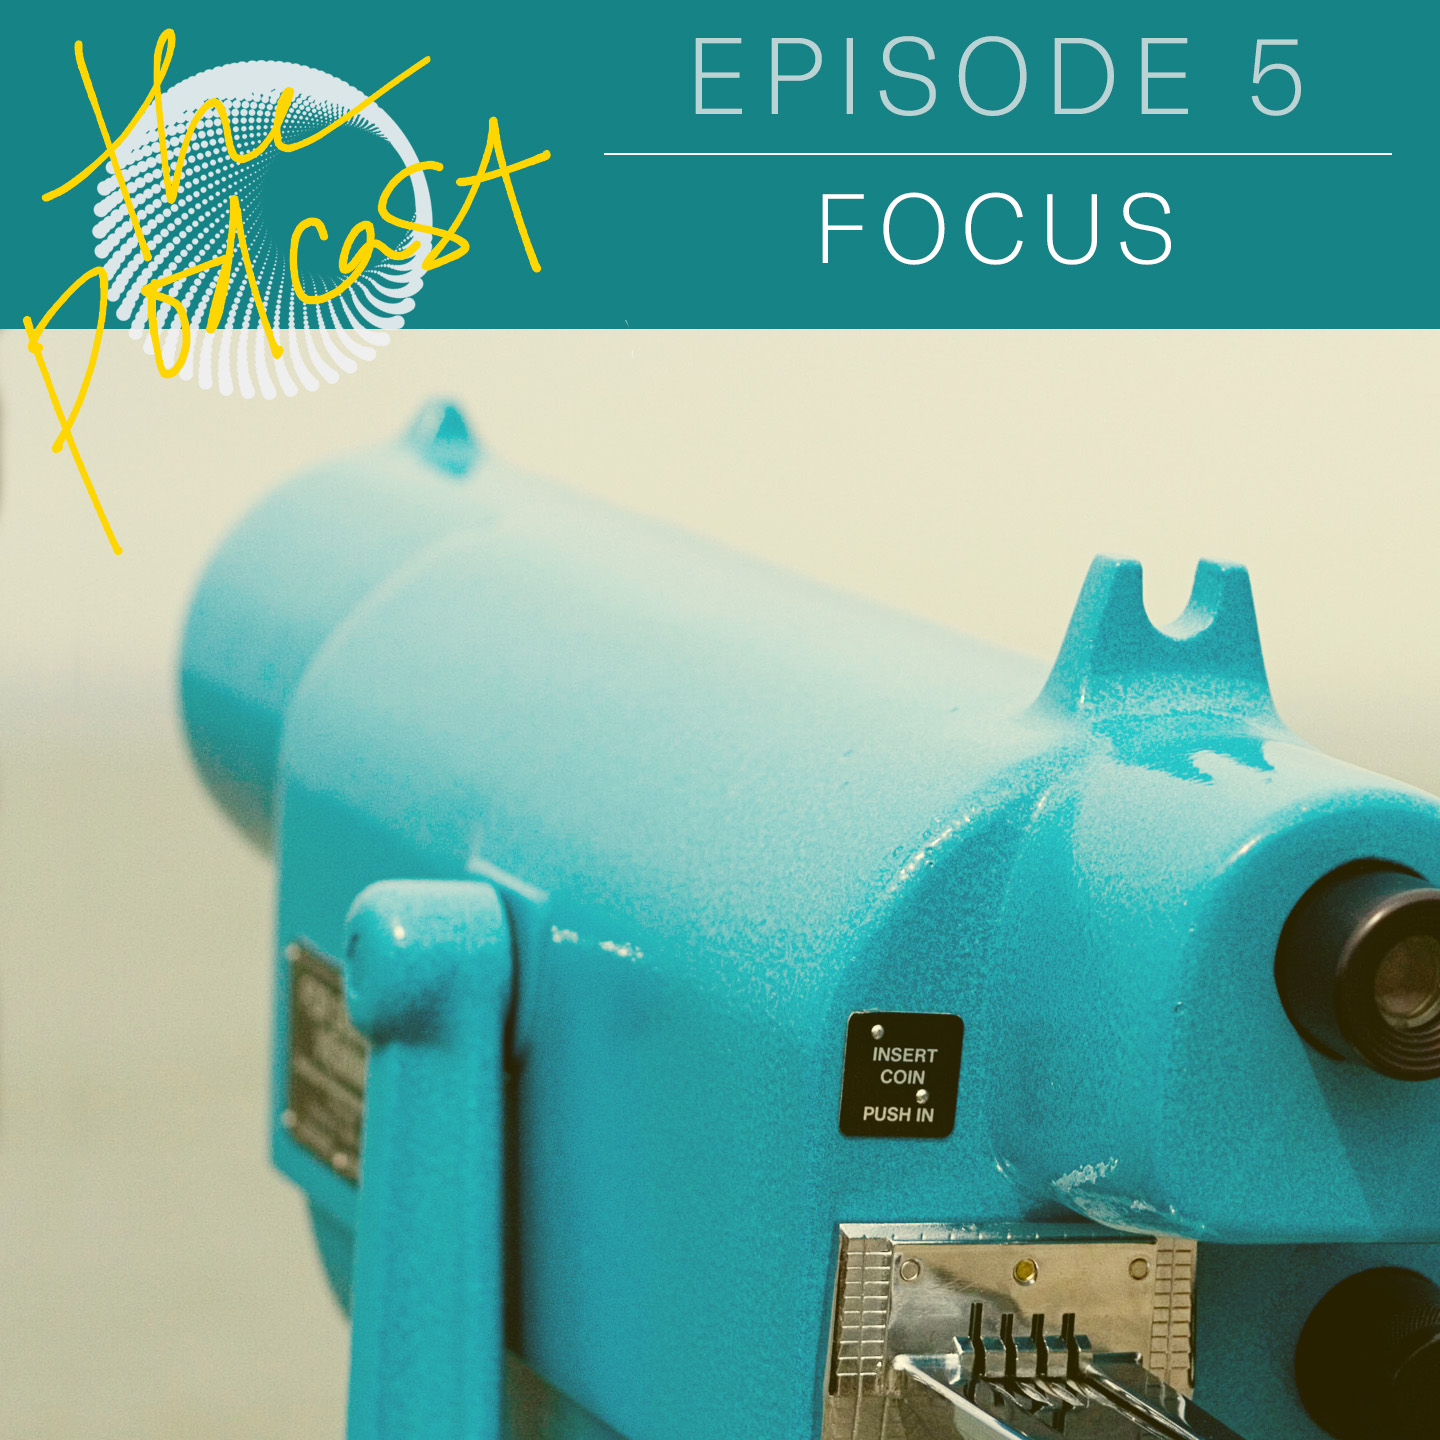 Episode 1.05: Focus   ON STAYING SMALL AND DIRECTING ENERGY INSTEAD OF SCALING UP  Tim and Tuesday unpack why they're not growing bigger, choosing to be small, flexible, and connected for the freedom to direct energy with precision.  For show notes, visit the episode page.  || October 30, 2018